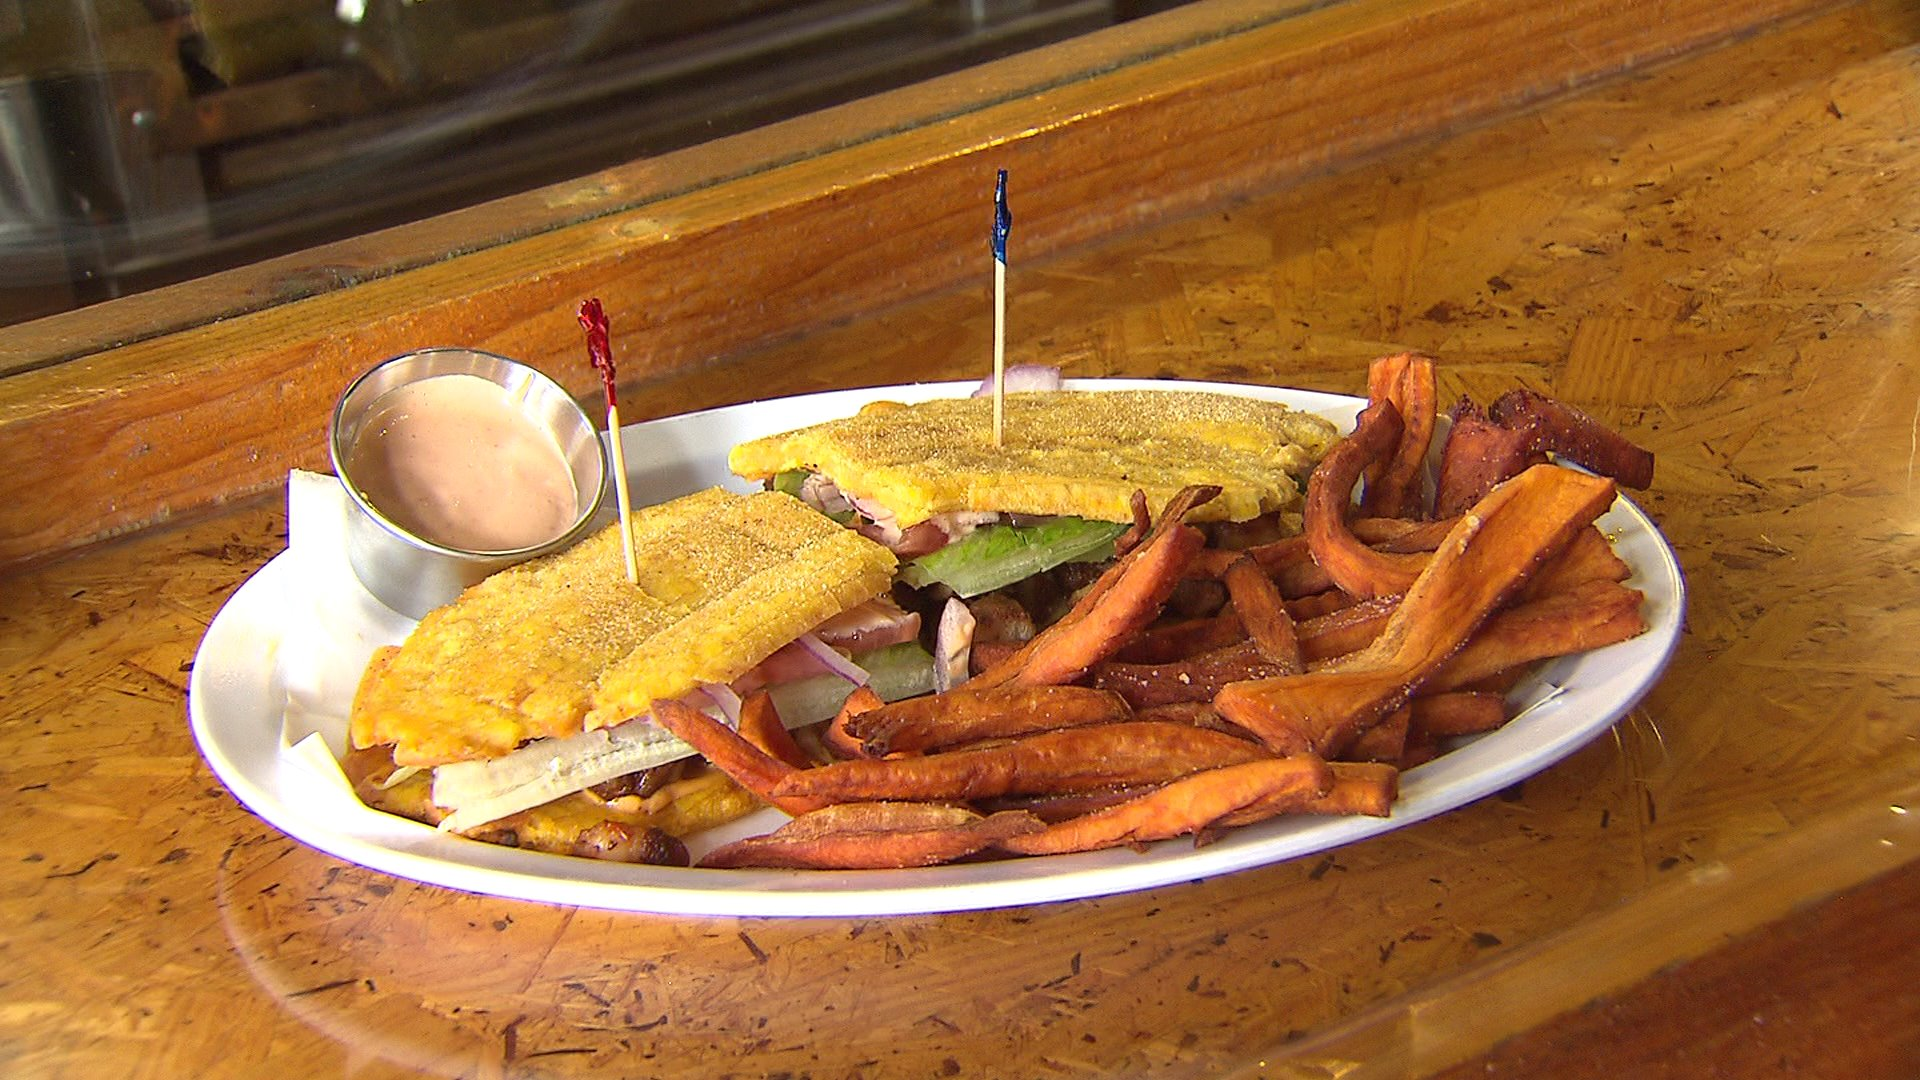 A Puerto Rican Sandwich You'll Only Find in Chicago